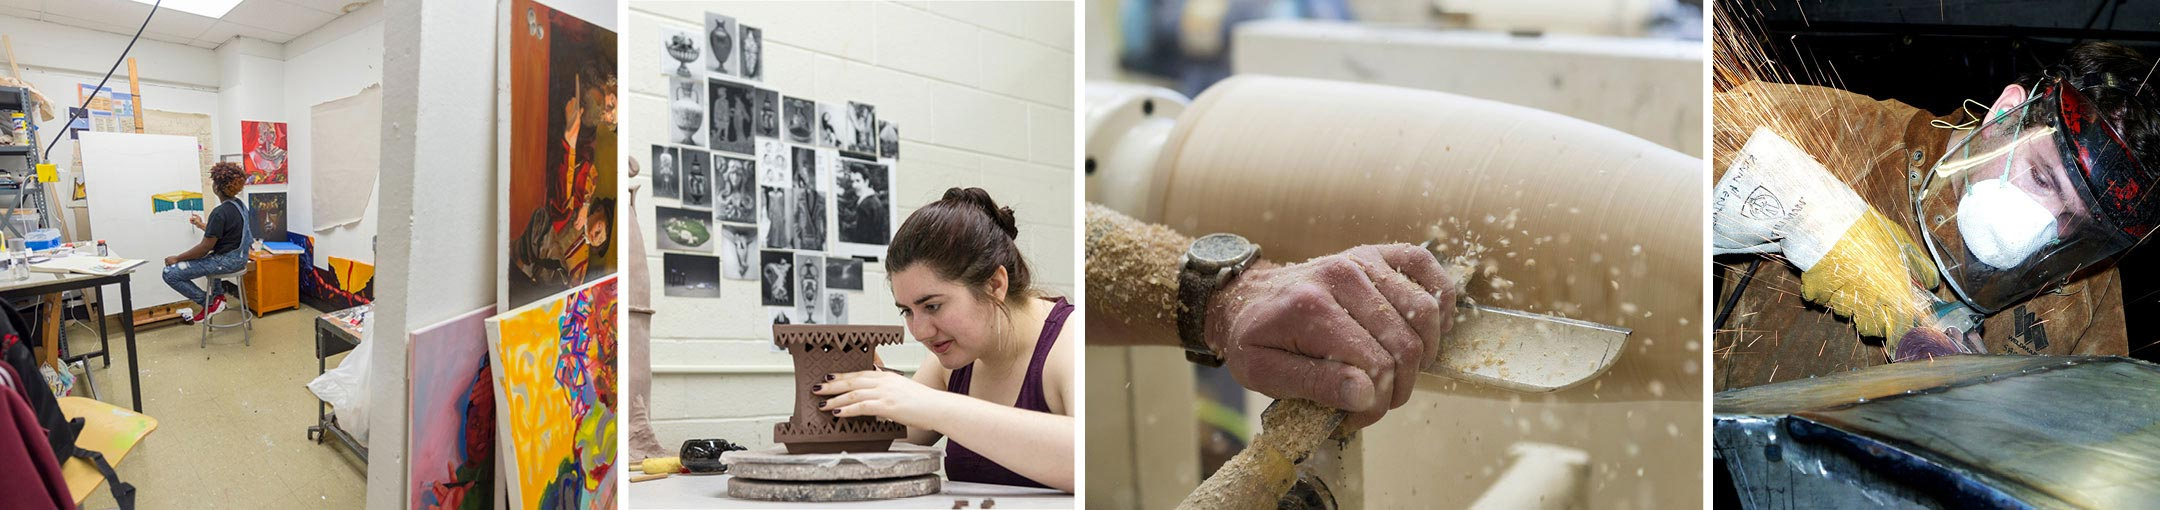 A collage of four images showing students painting, working with clay, turning a piece of wood on a lathe, and an angle grinder cleaning up a piece of metal (from left to right).